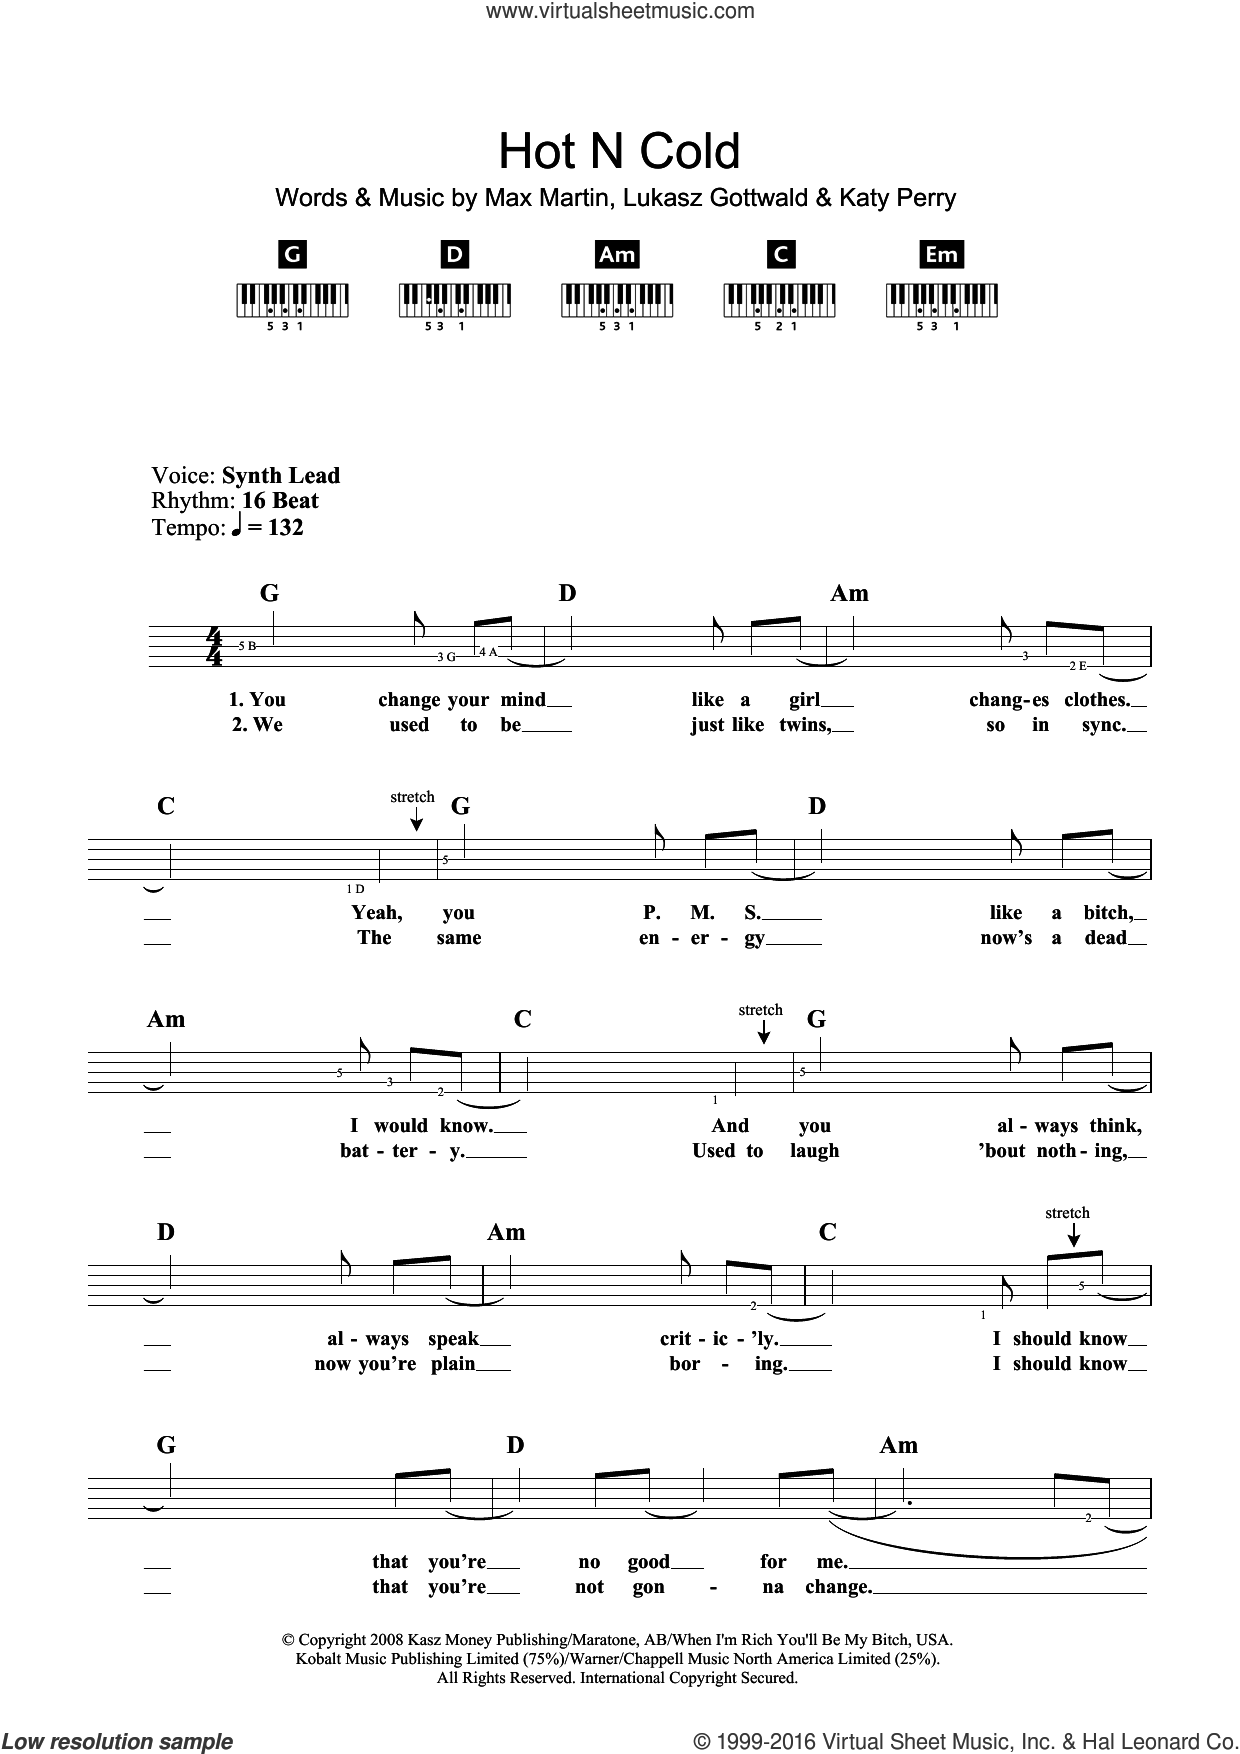 Hot N Cold sheet music for piano solo (chords, lyrics, melody) by Max Martin, Katy Perry and Lukasz Gottwald. Score Image Preview.